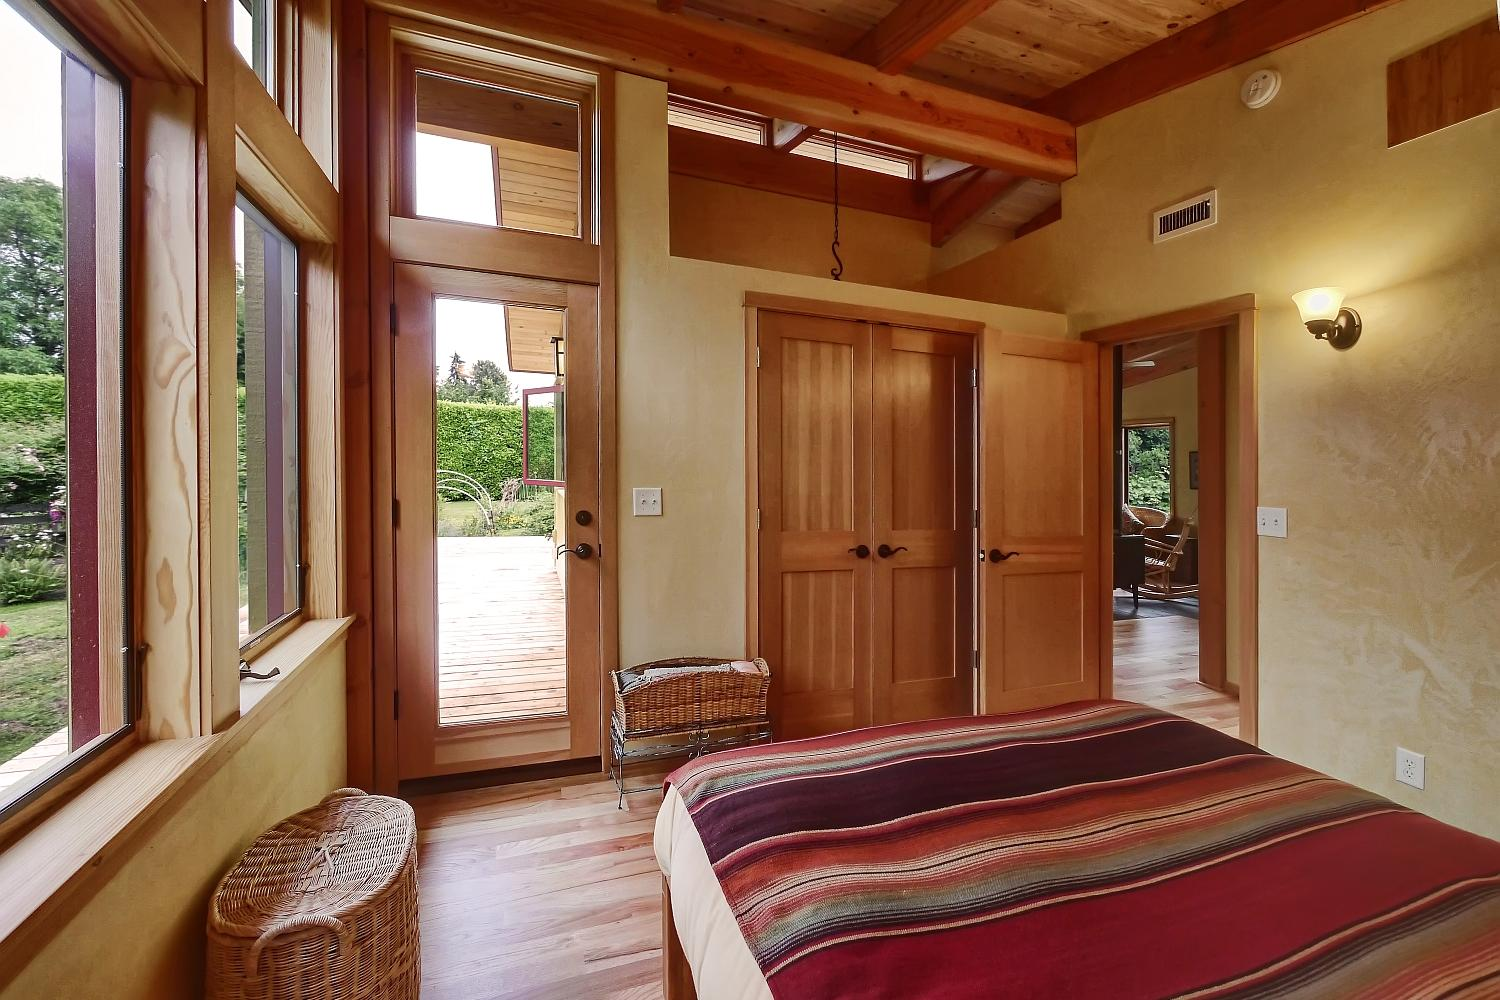 gallery river road house a beautiful timber frame 17083 | nir pearlson river road bedroom2 via smallhousebliss